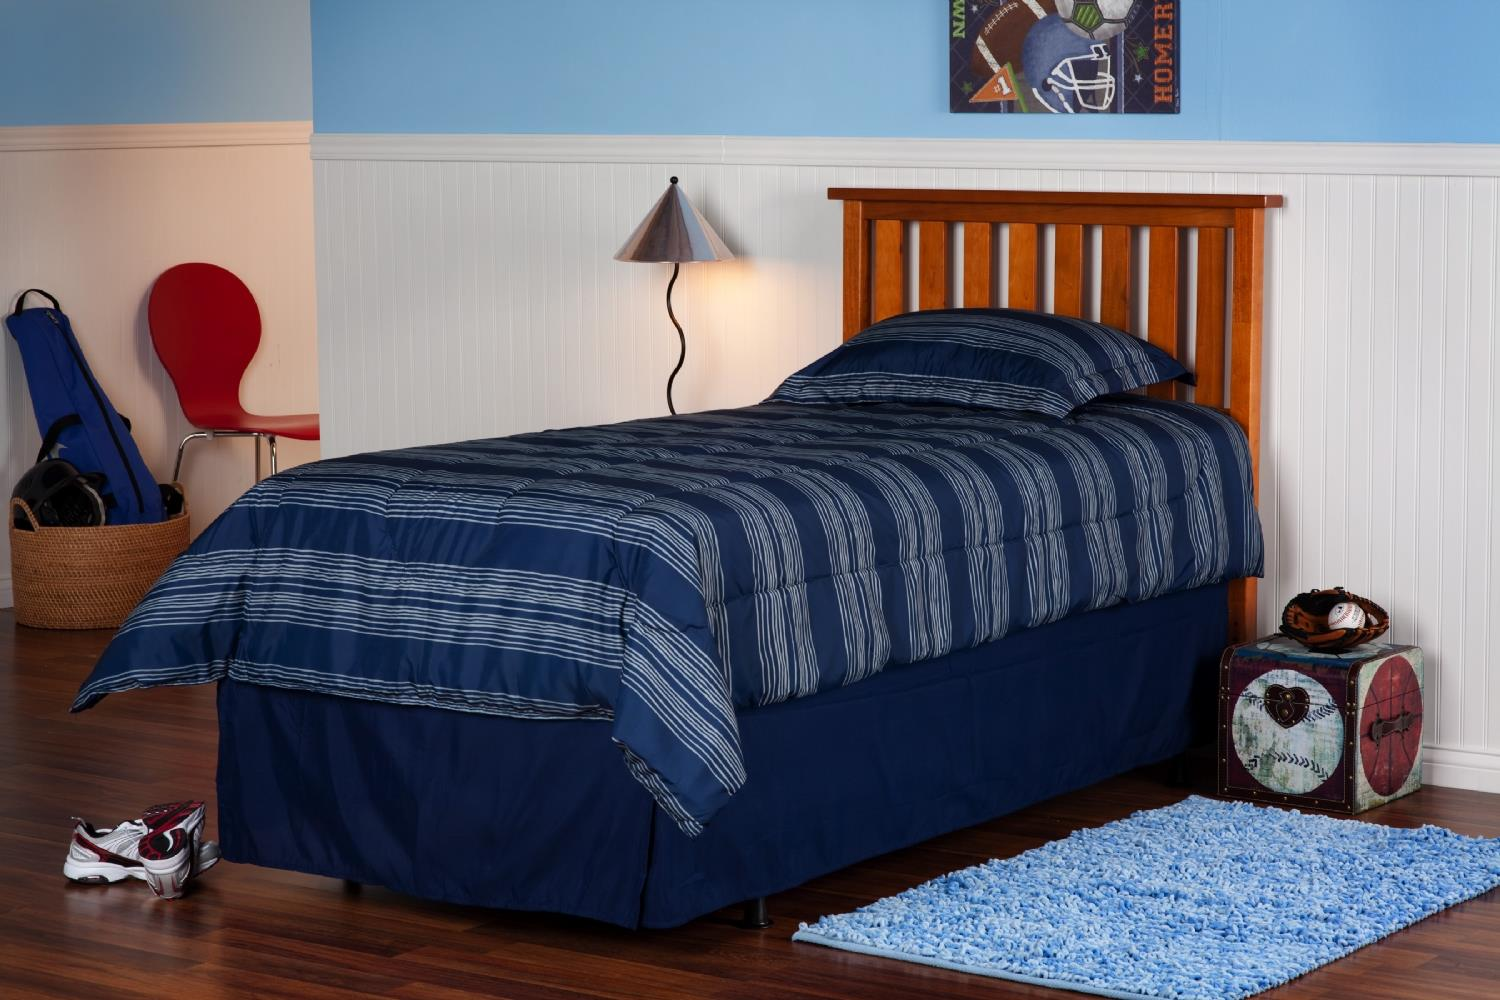 Fashion Bed Group Belmont Twin Headboard - Item Number: 51L523